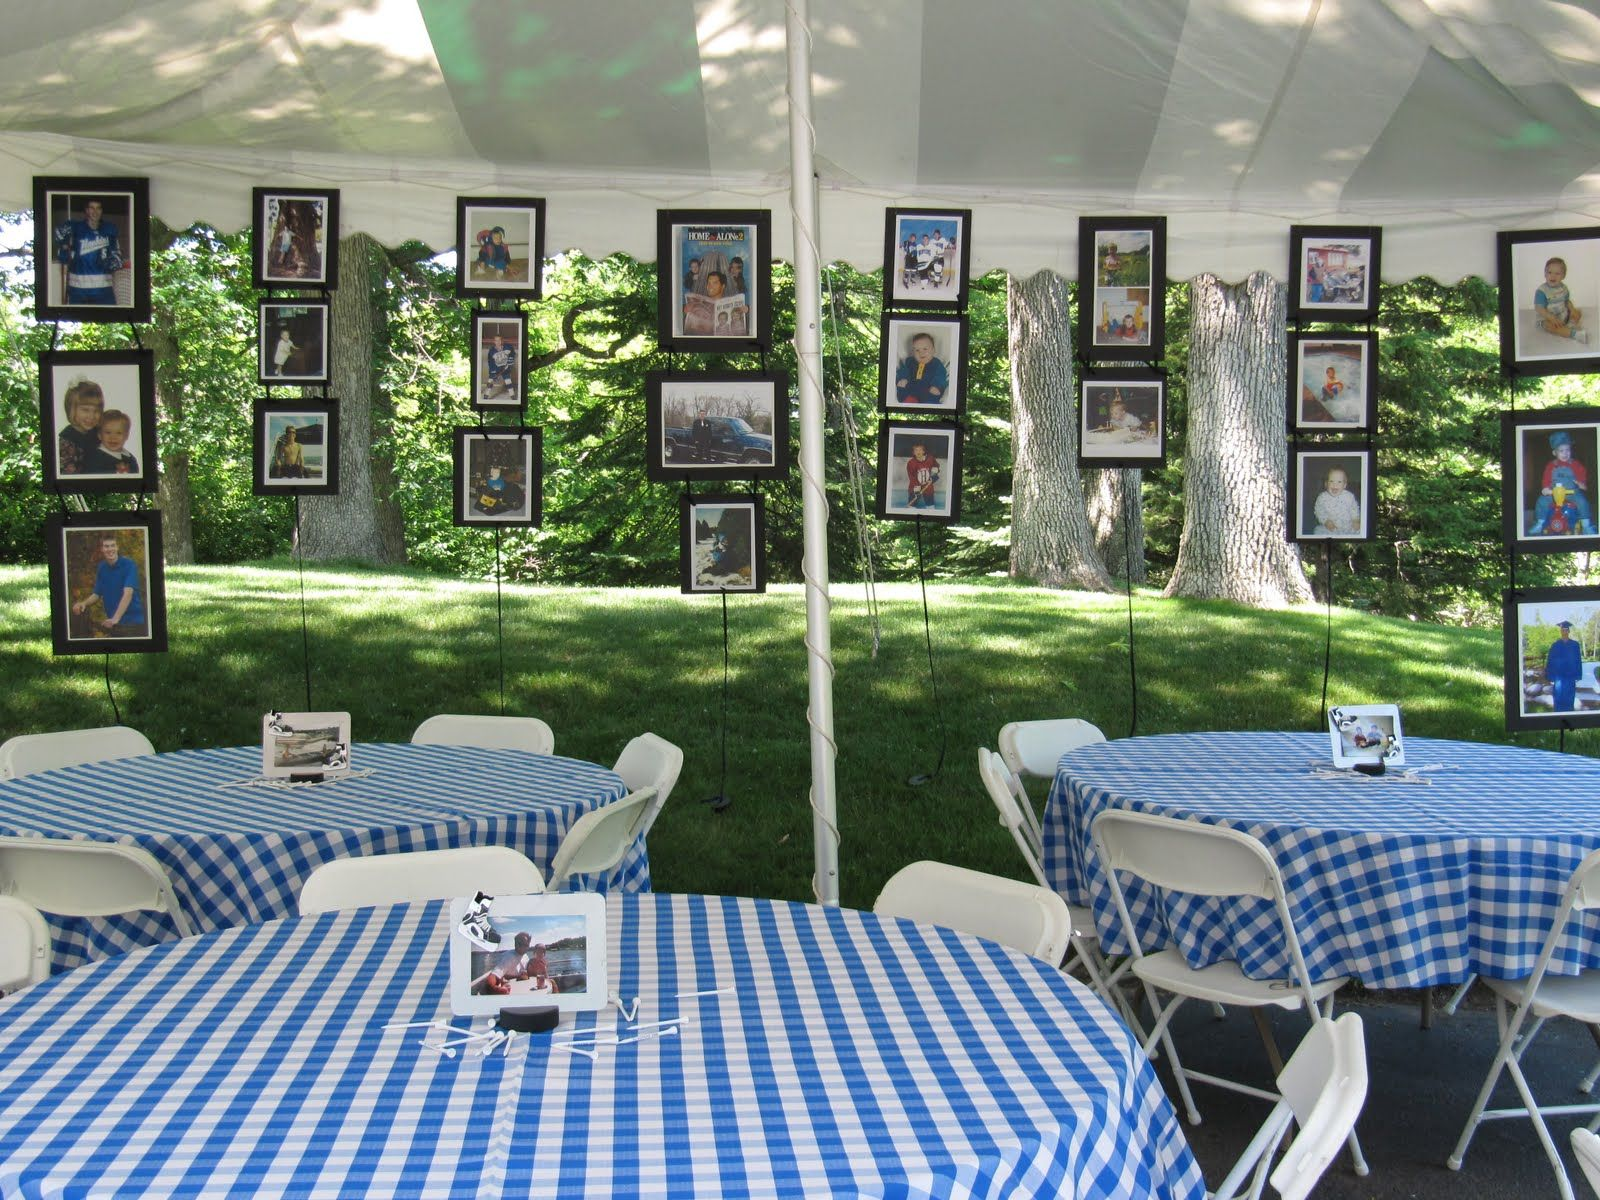 Exceptional Awesome Graduation Open House Decoration Ideas Check More At  Http://www.jnnsysy.com/graduation Open House Decoration Ideas/